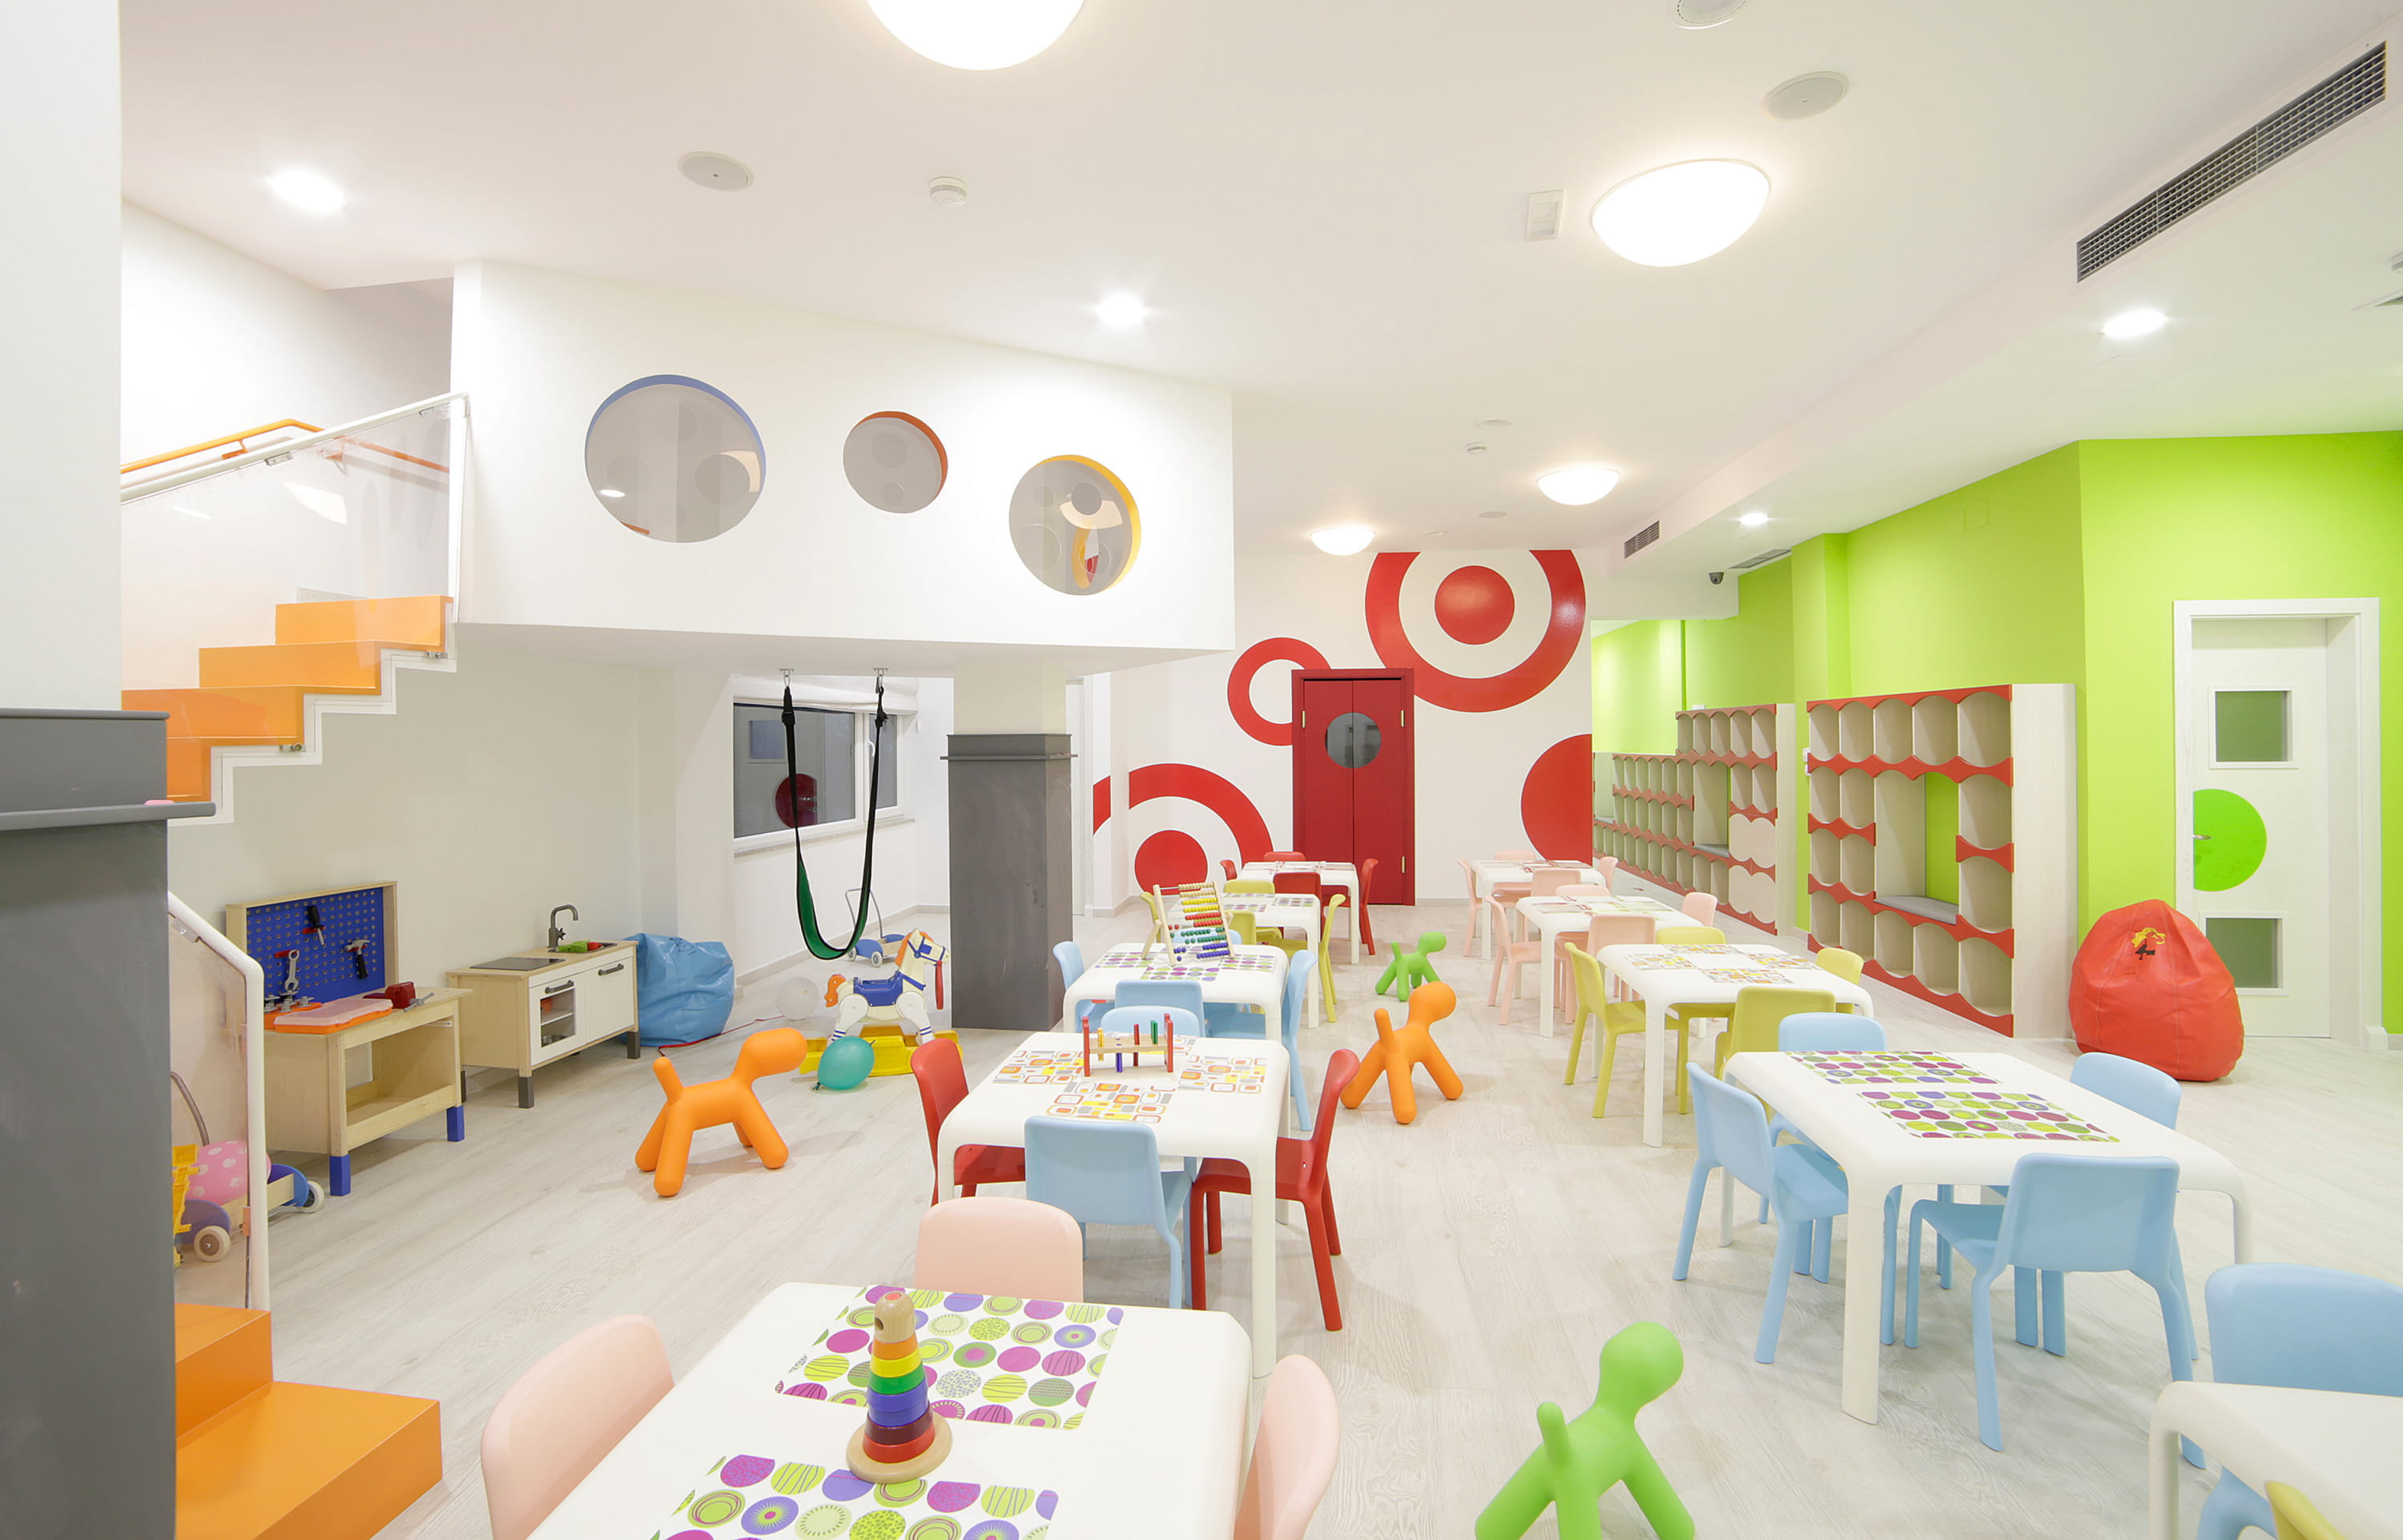 Classroom Design For The Blind ~ Snow jr le made in italy pour les tout petits